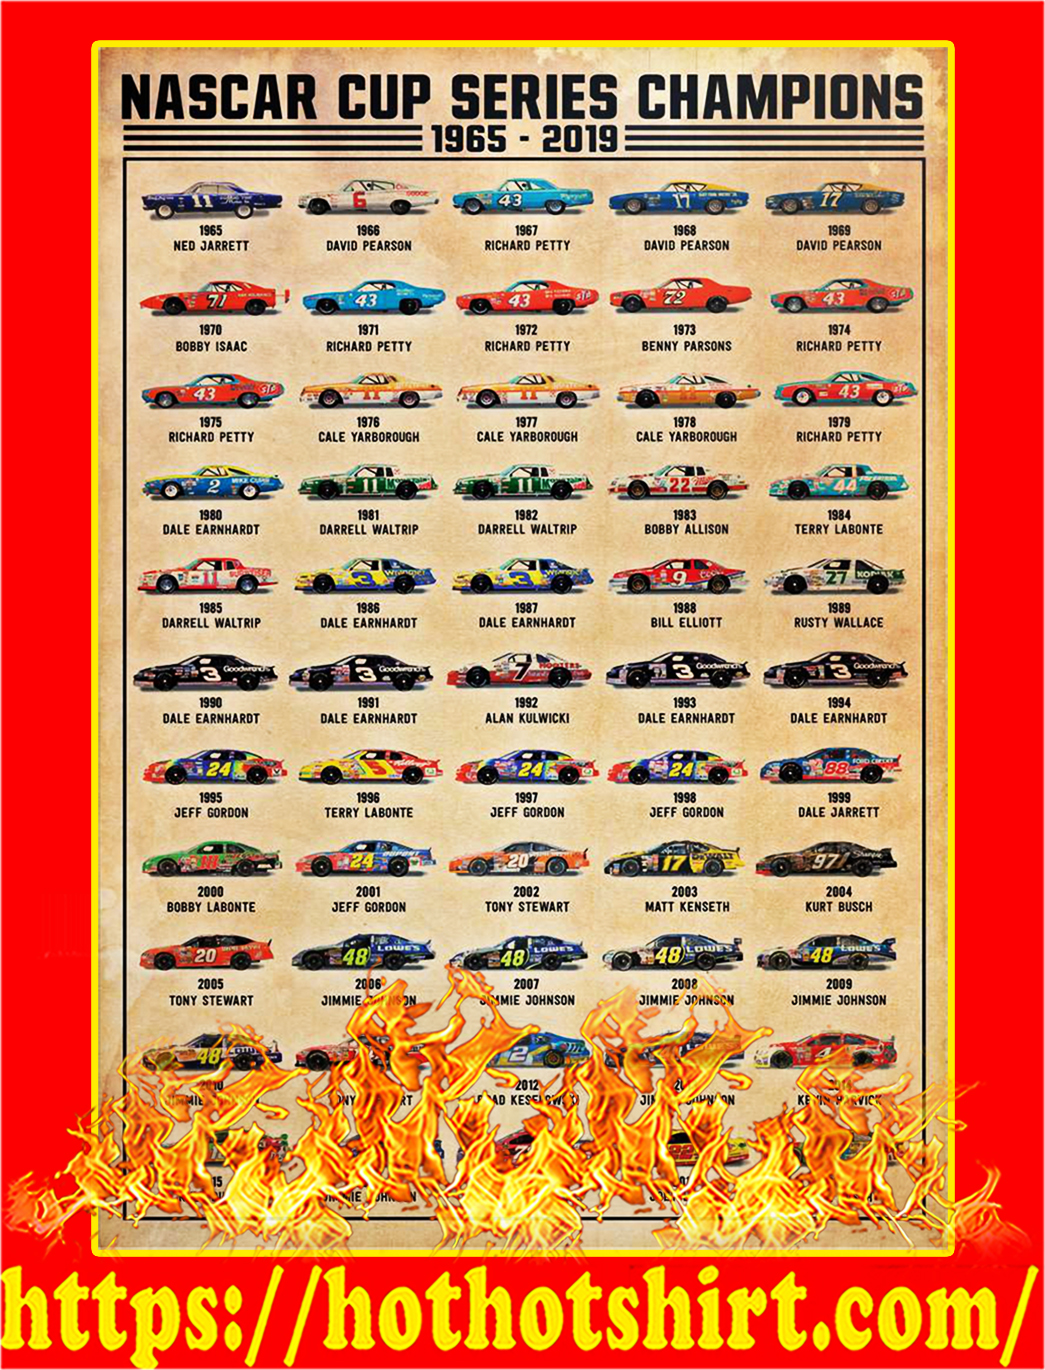 Nascar cup series champions poster - A2